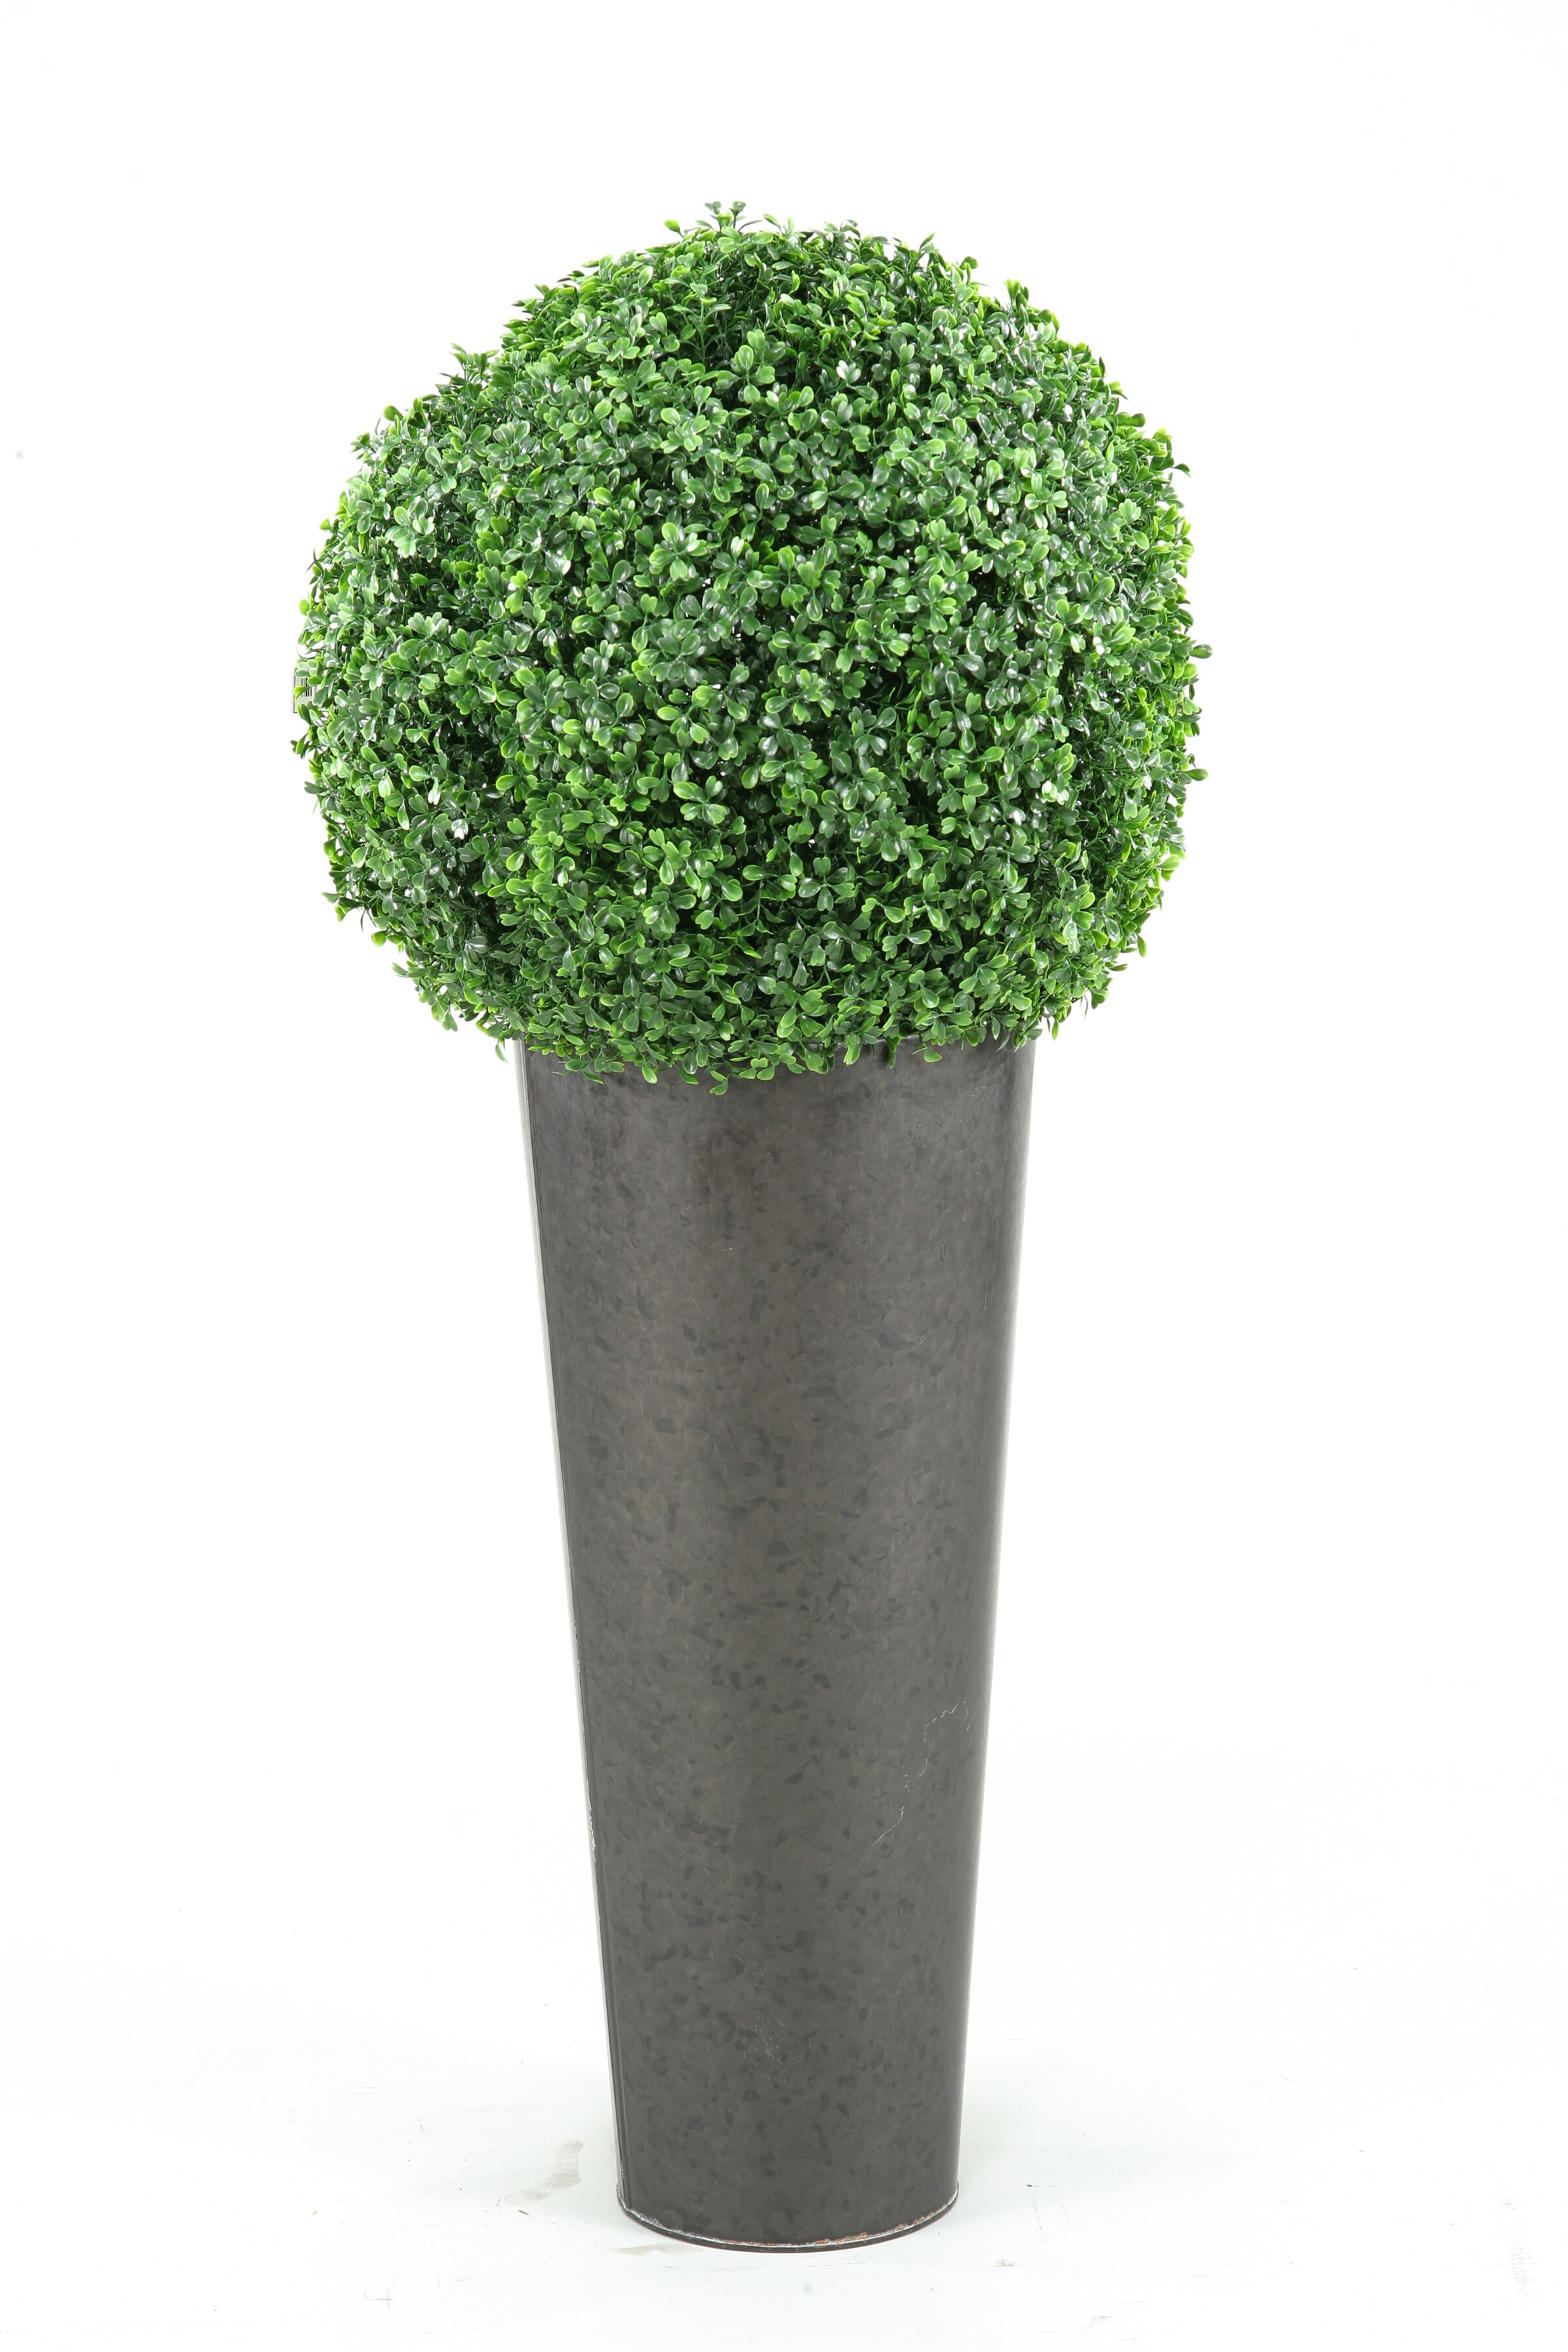 Boxwood Ball Round Topiary in Planter | Joss & Main on chrome planters, iron planters, long rectangular planters, bucket planters, stone planters, window boxes planters, copper finish planters, old planters, tall planters, urn planters, pewter planters, resin planters, large planters, plastic planters, round corrugated planters, corrugated raised planters, aluminum planters, wall mounted planters, stainless steel planters, lead planters,